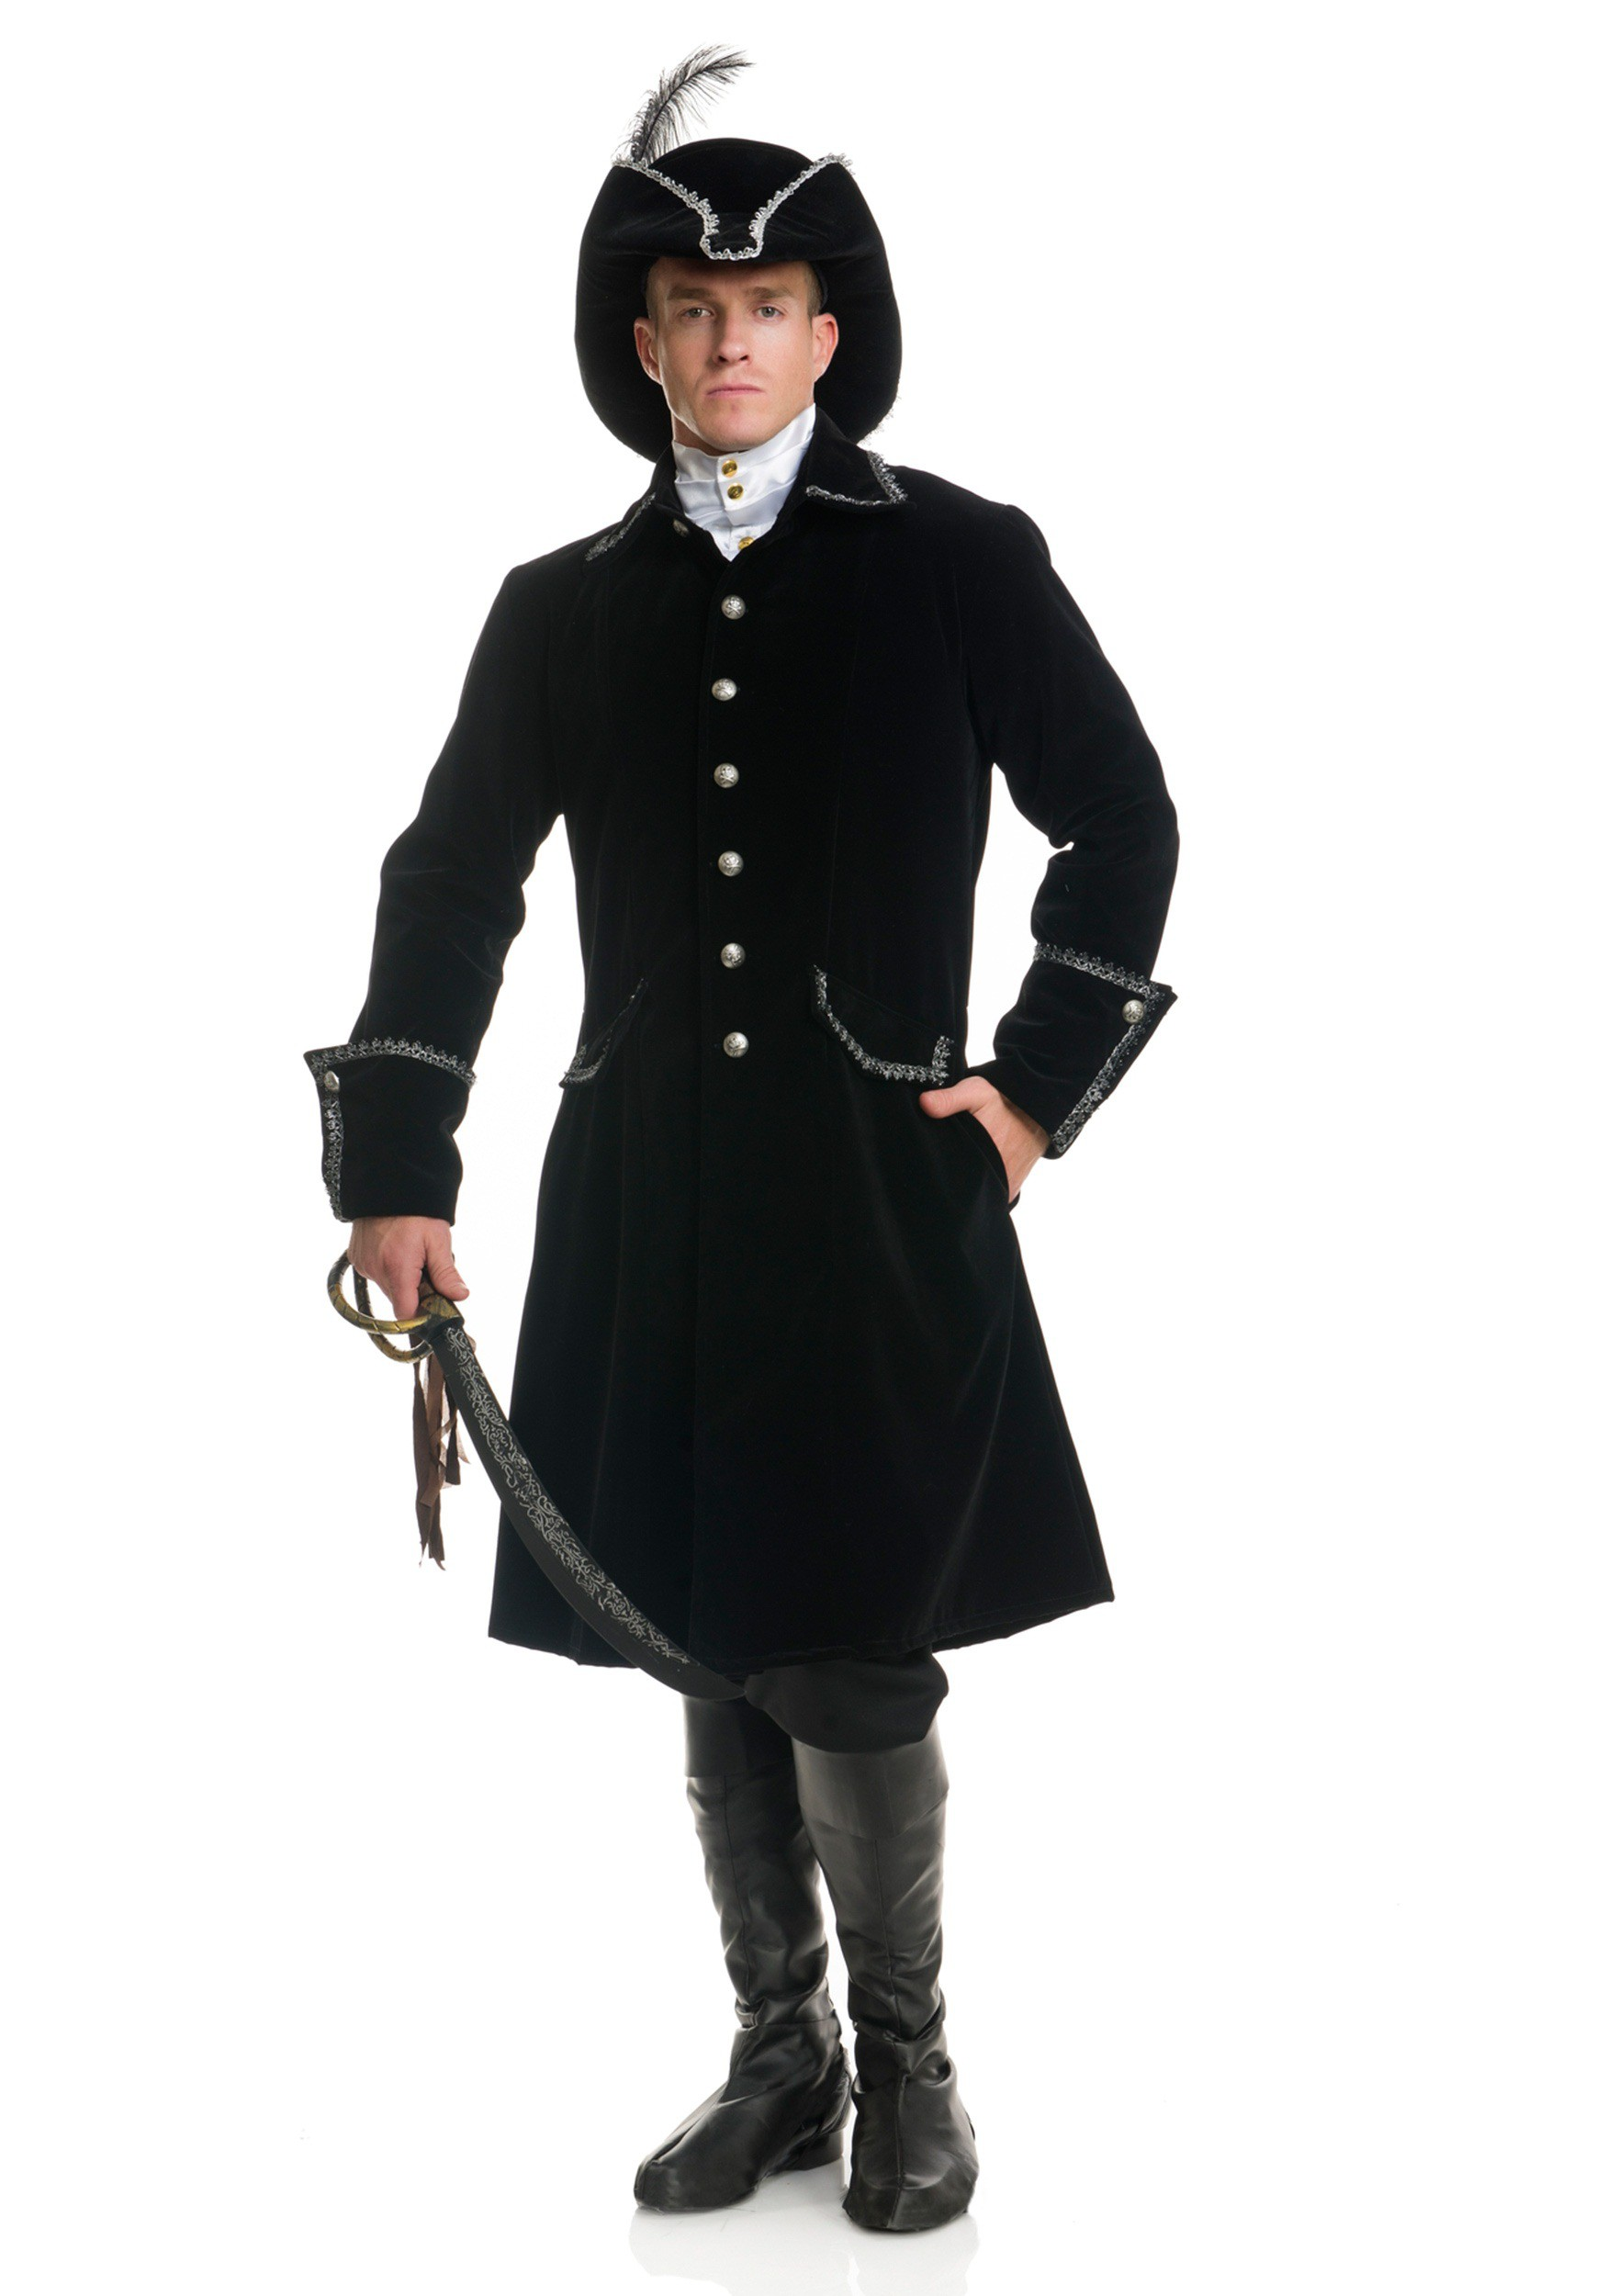 76b52b2ff52 Deluxe Black Pirate Jacket with Pockets Costume